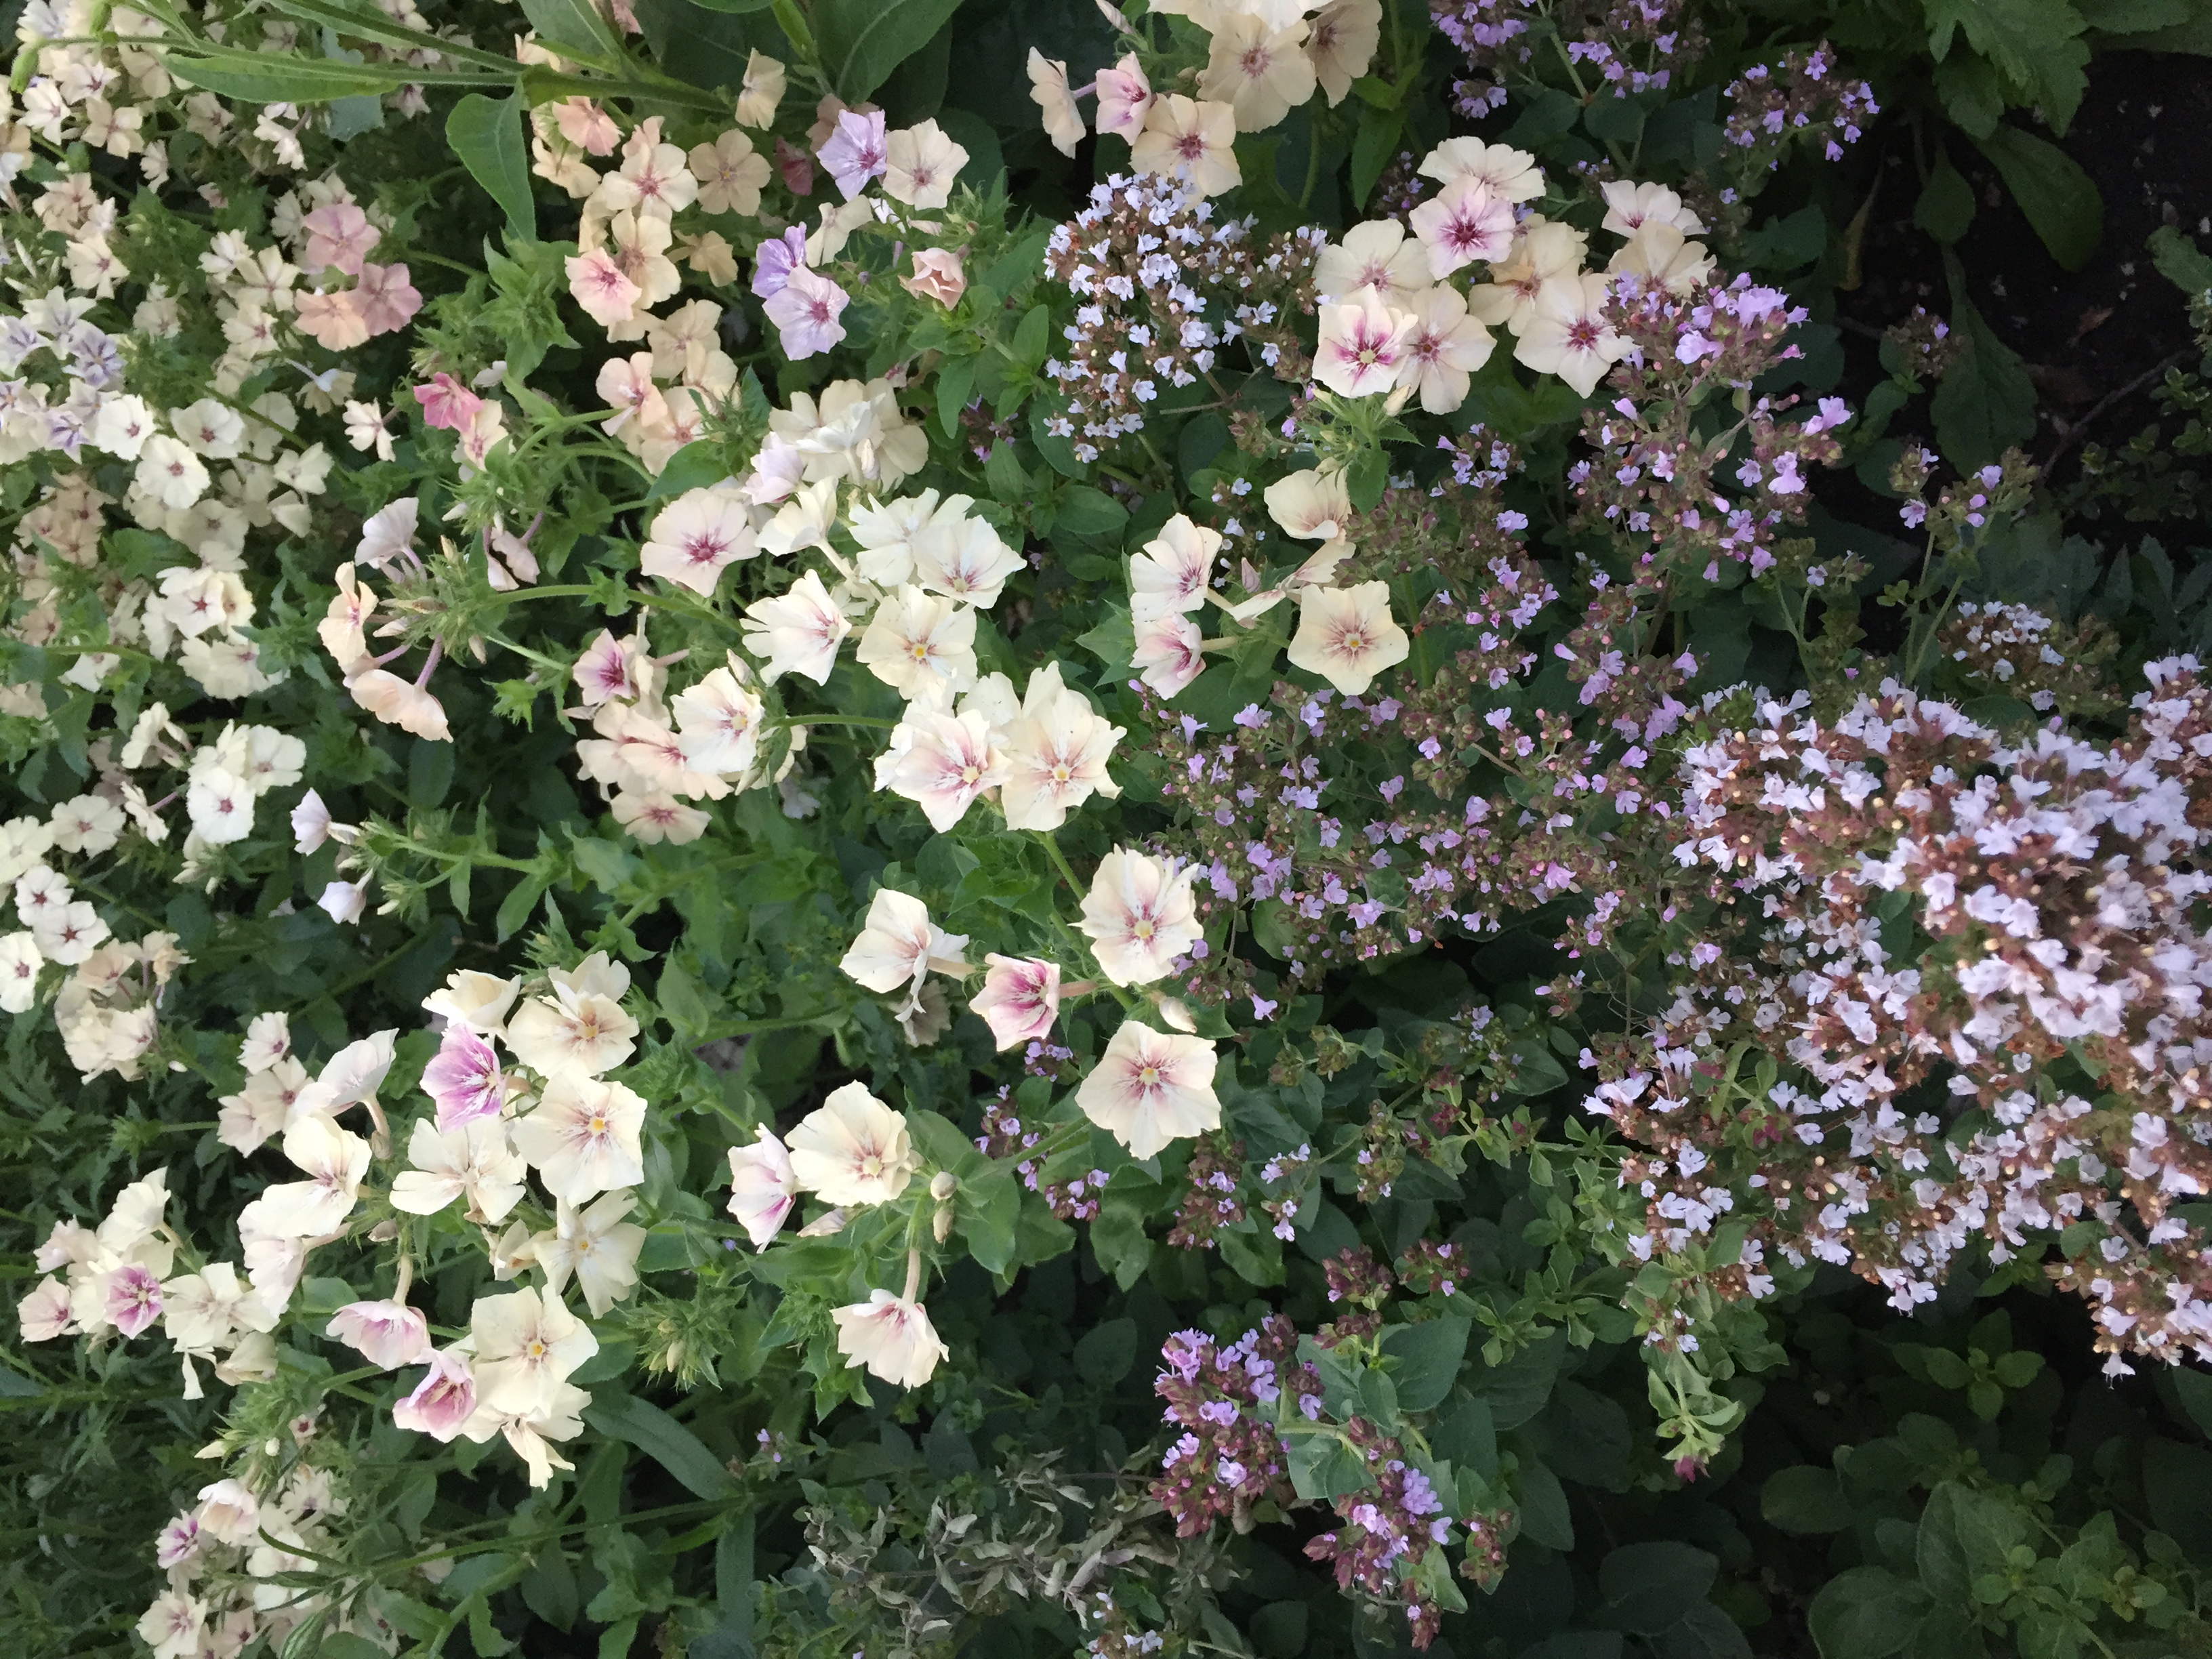 Phlox and oregano